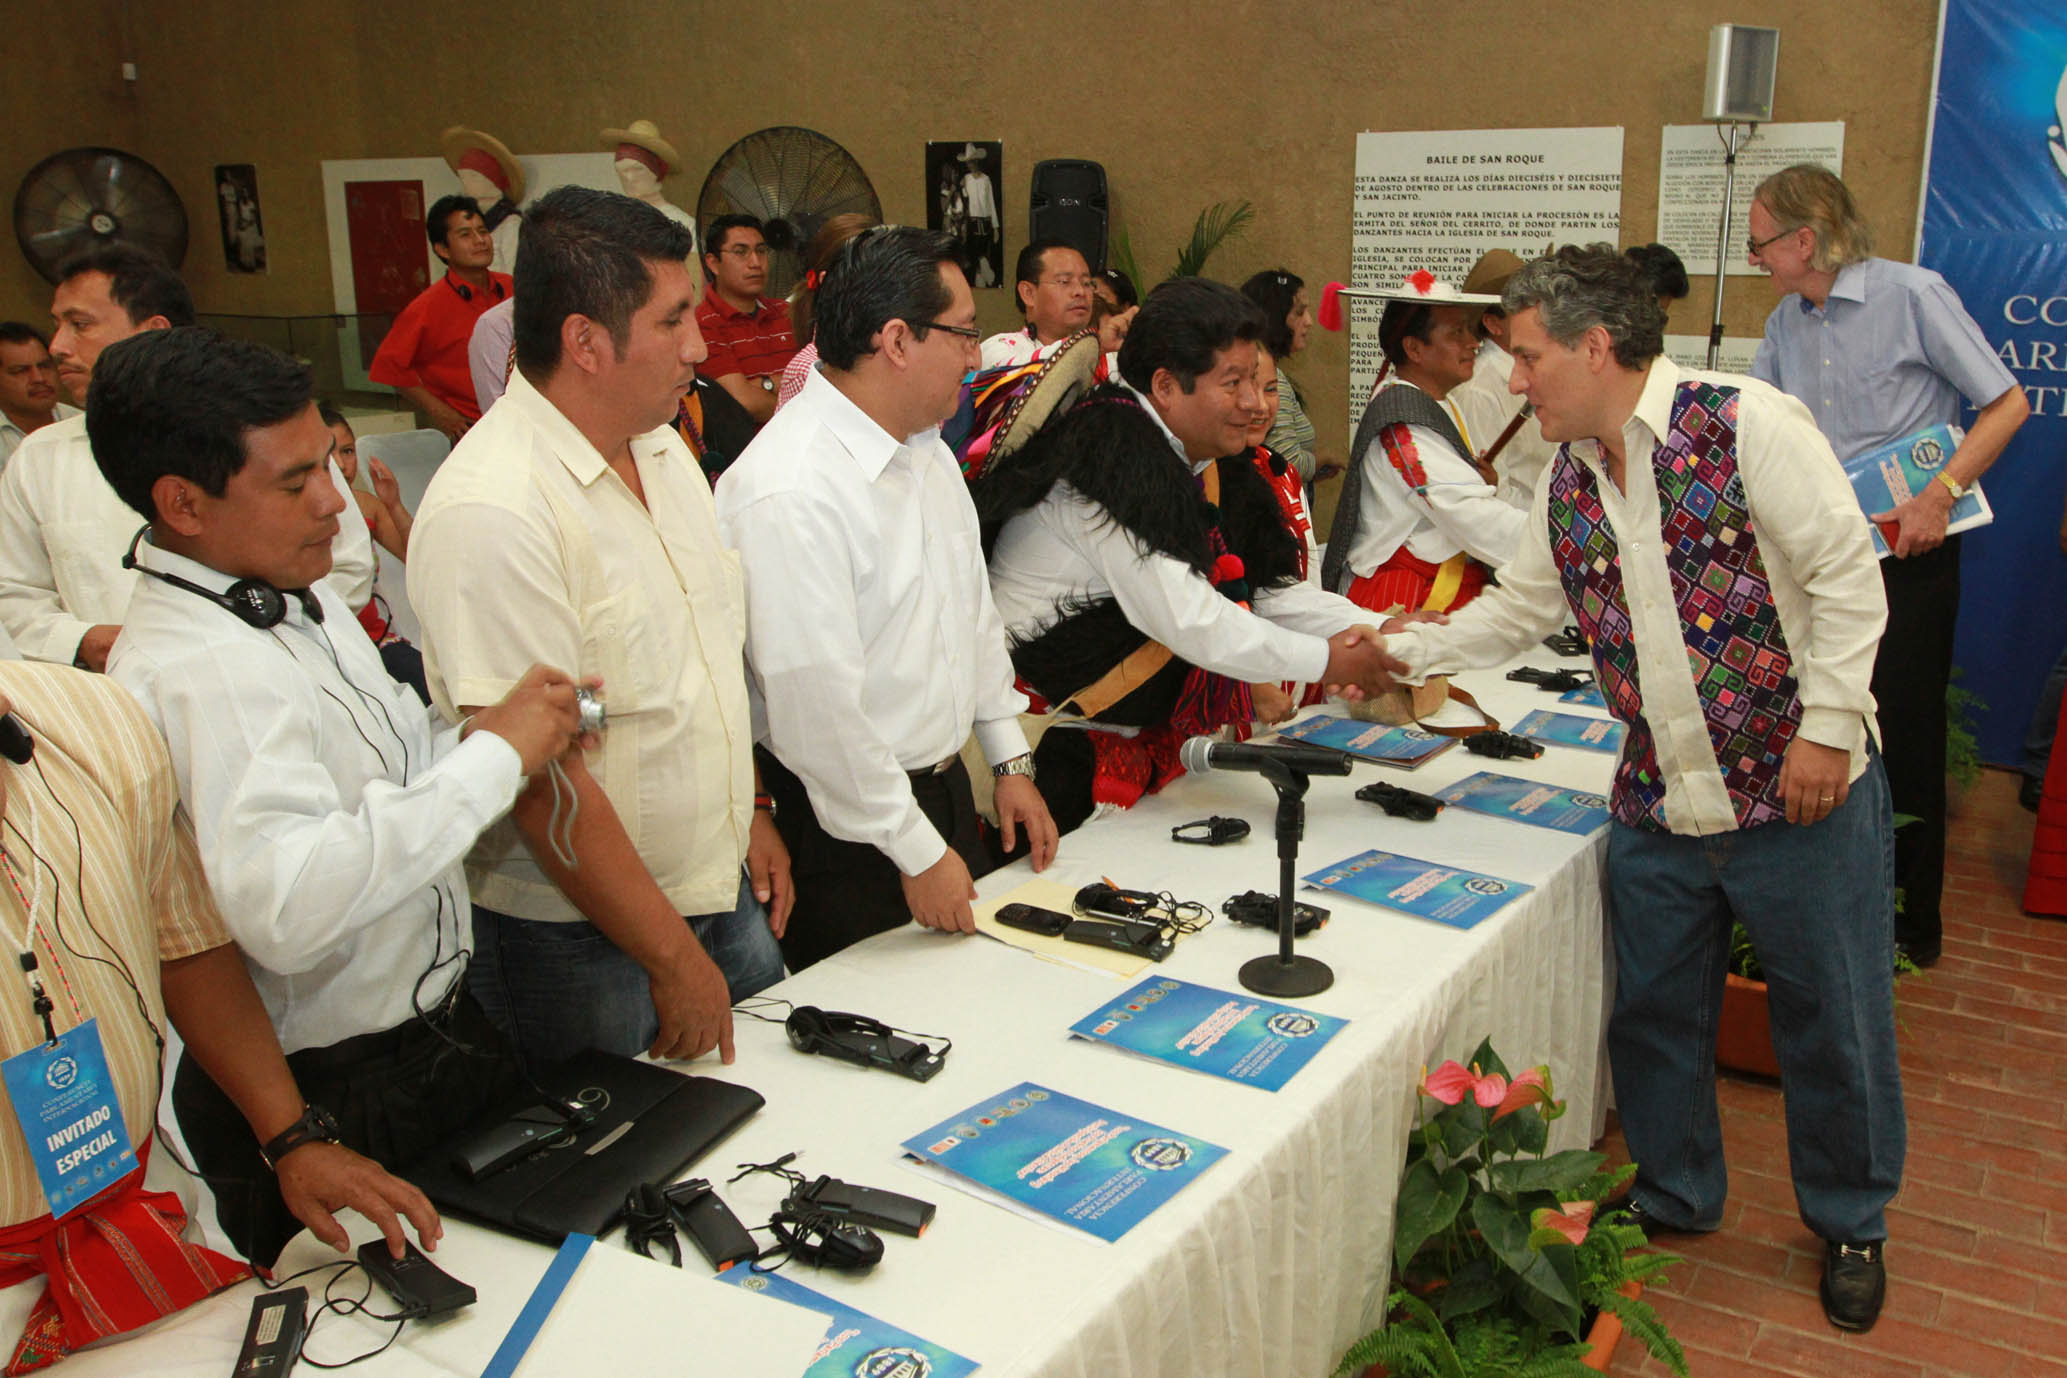 Dialogue between parliamentarians and indigenous leaders, Chiapas, Mexico (photo credit: Inter-Parliamentary Union/flickr)